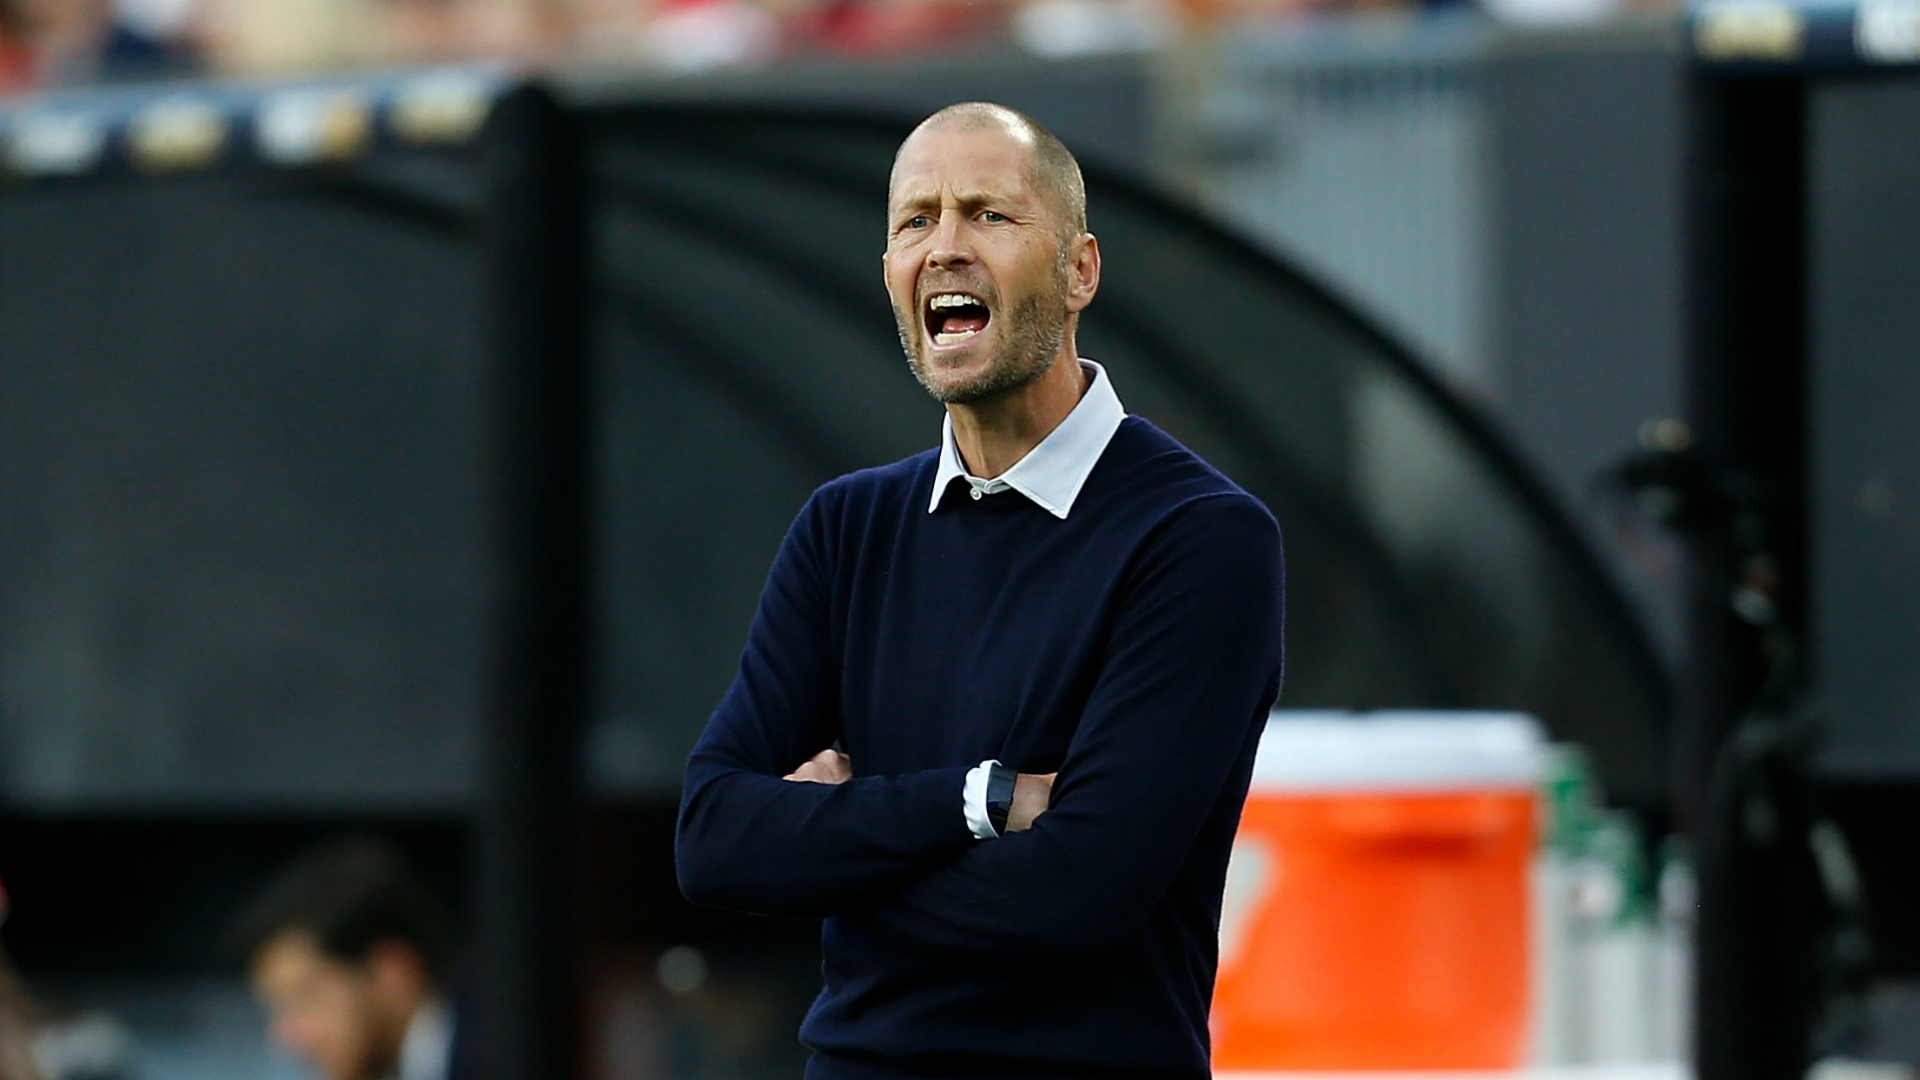 Gold Cup 2019: Berhalter facing USMNT rotation decision ahead of group finale